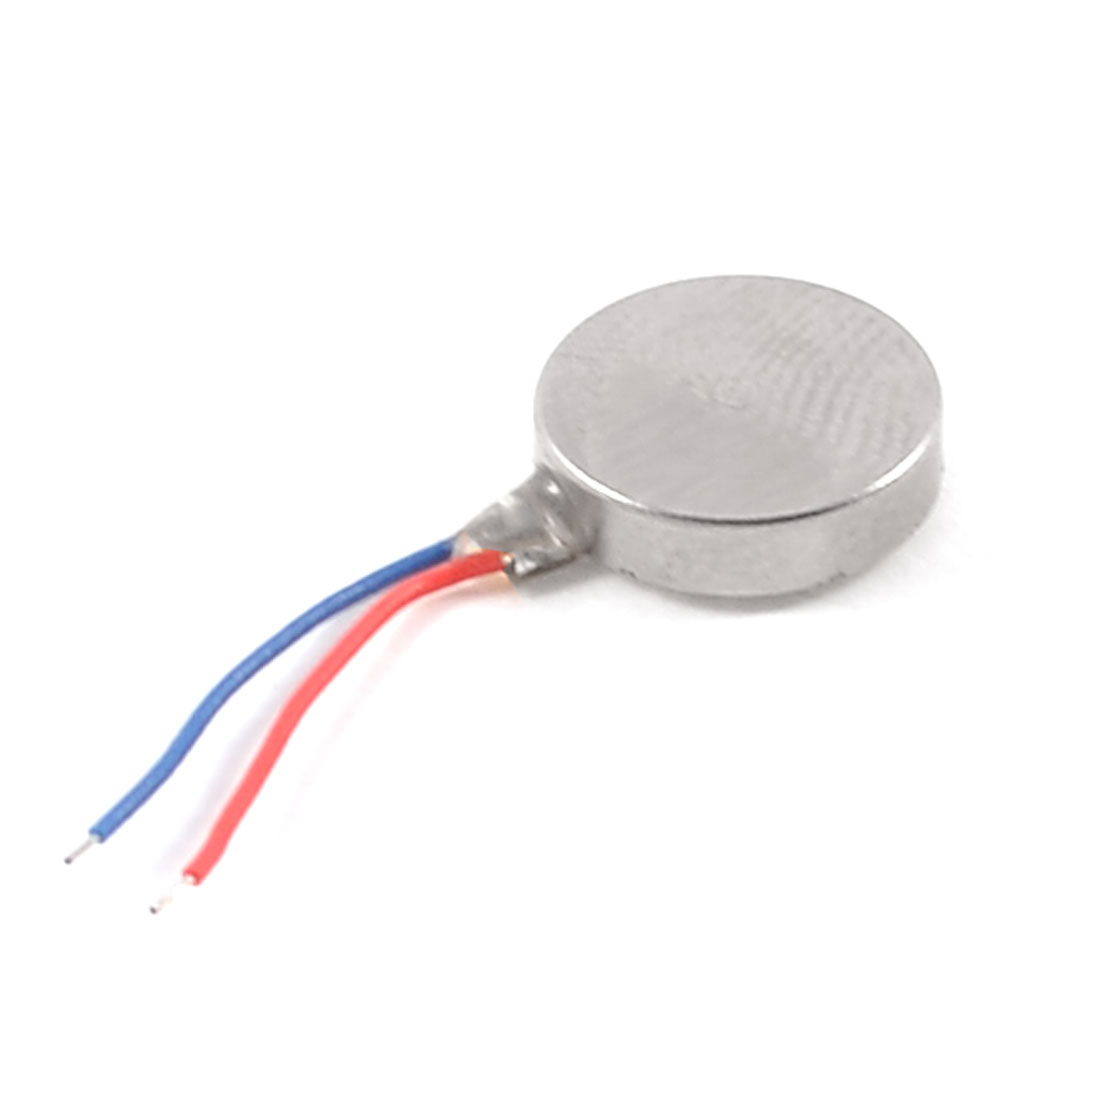 10mm-x-3mm-Cellphone-Vibrating-Vibration-DC-Micro-Motor-3V-70mA-9000-2000RPM